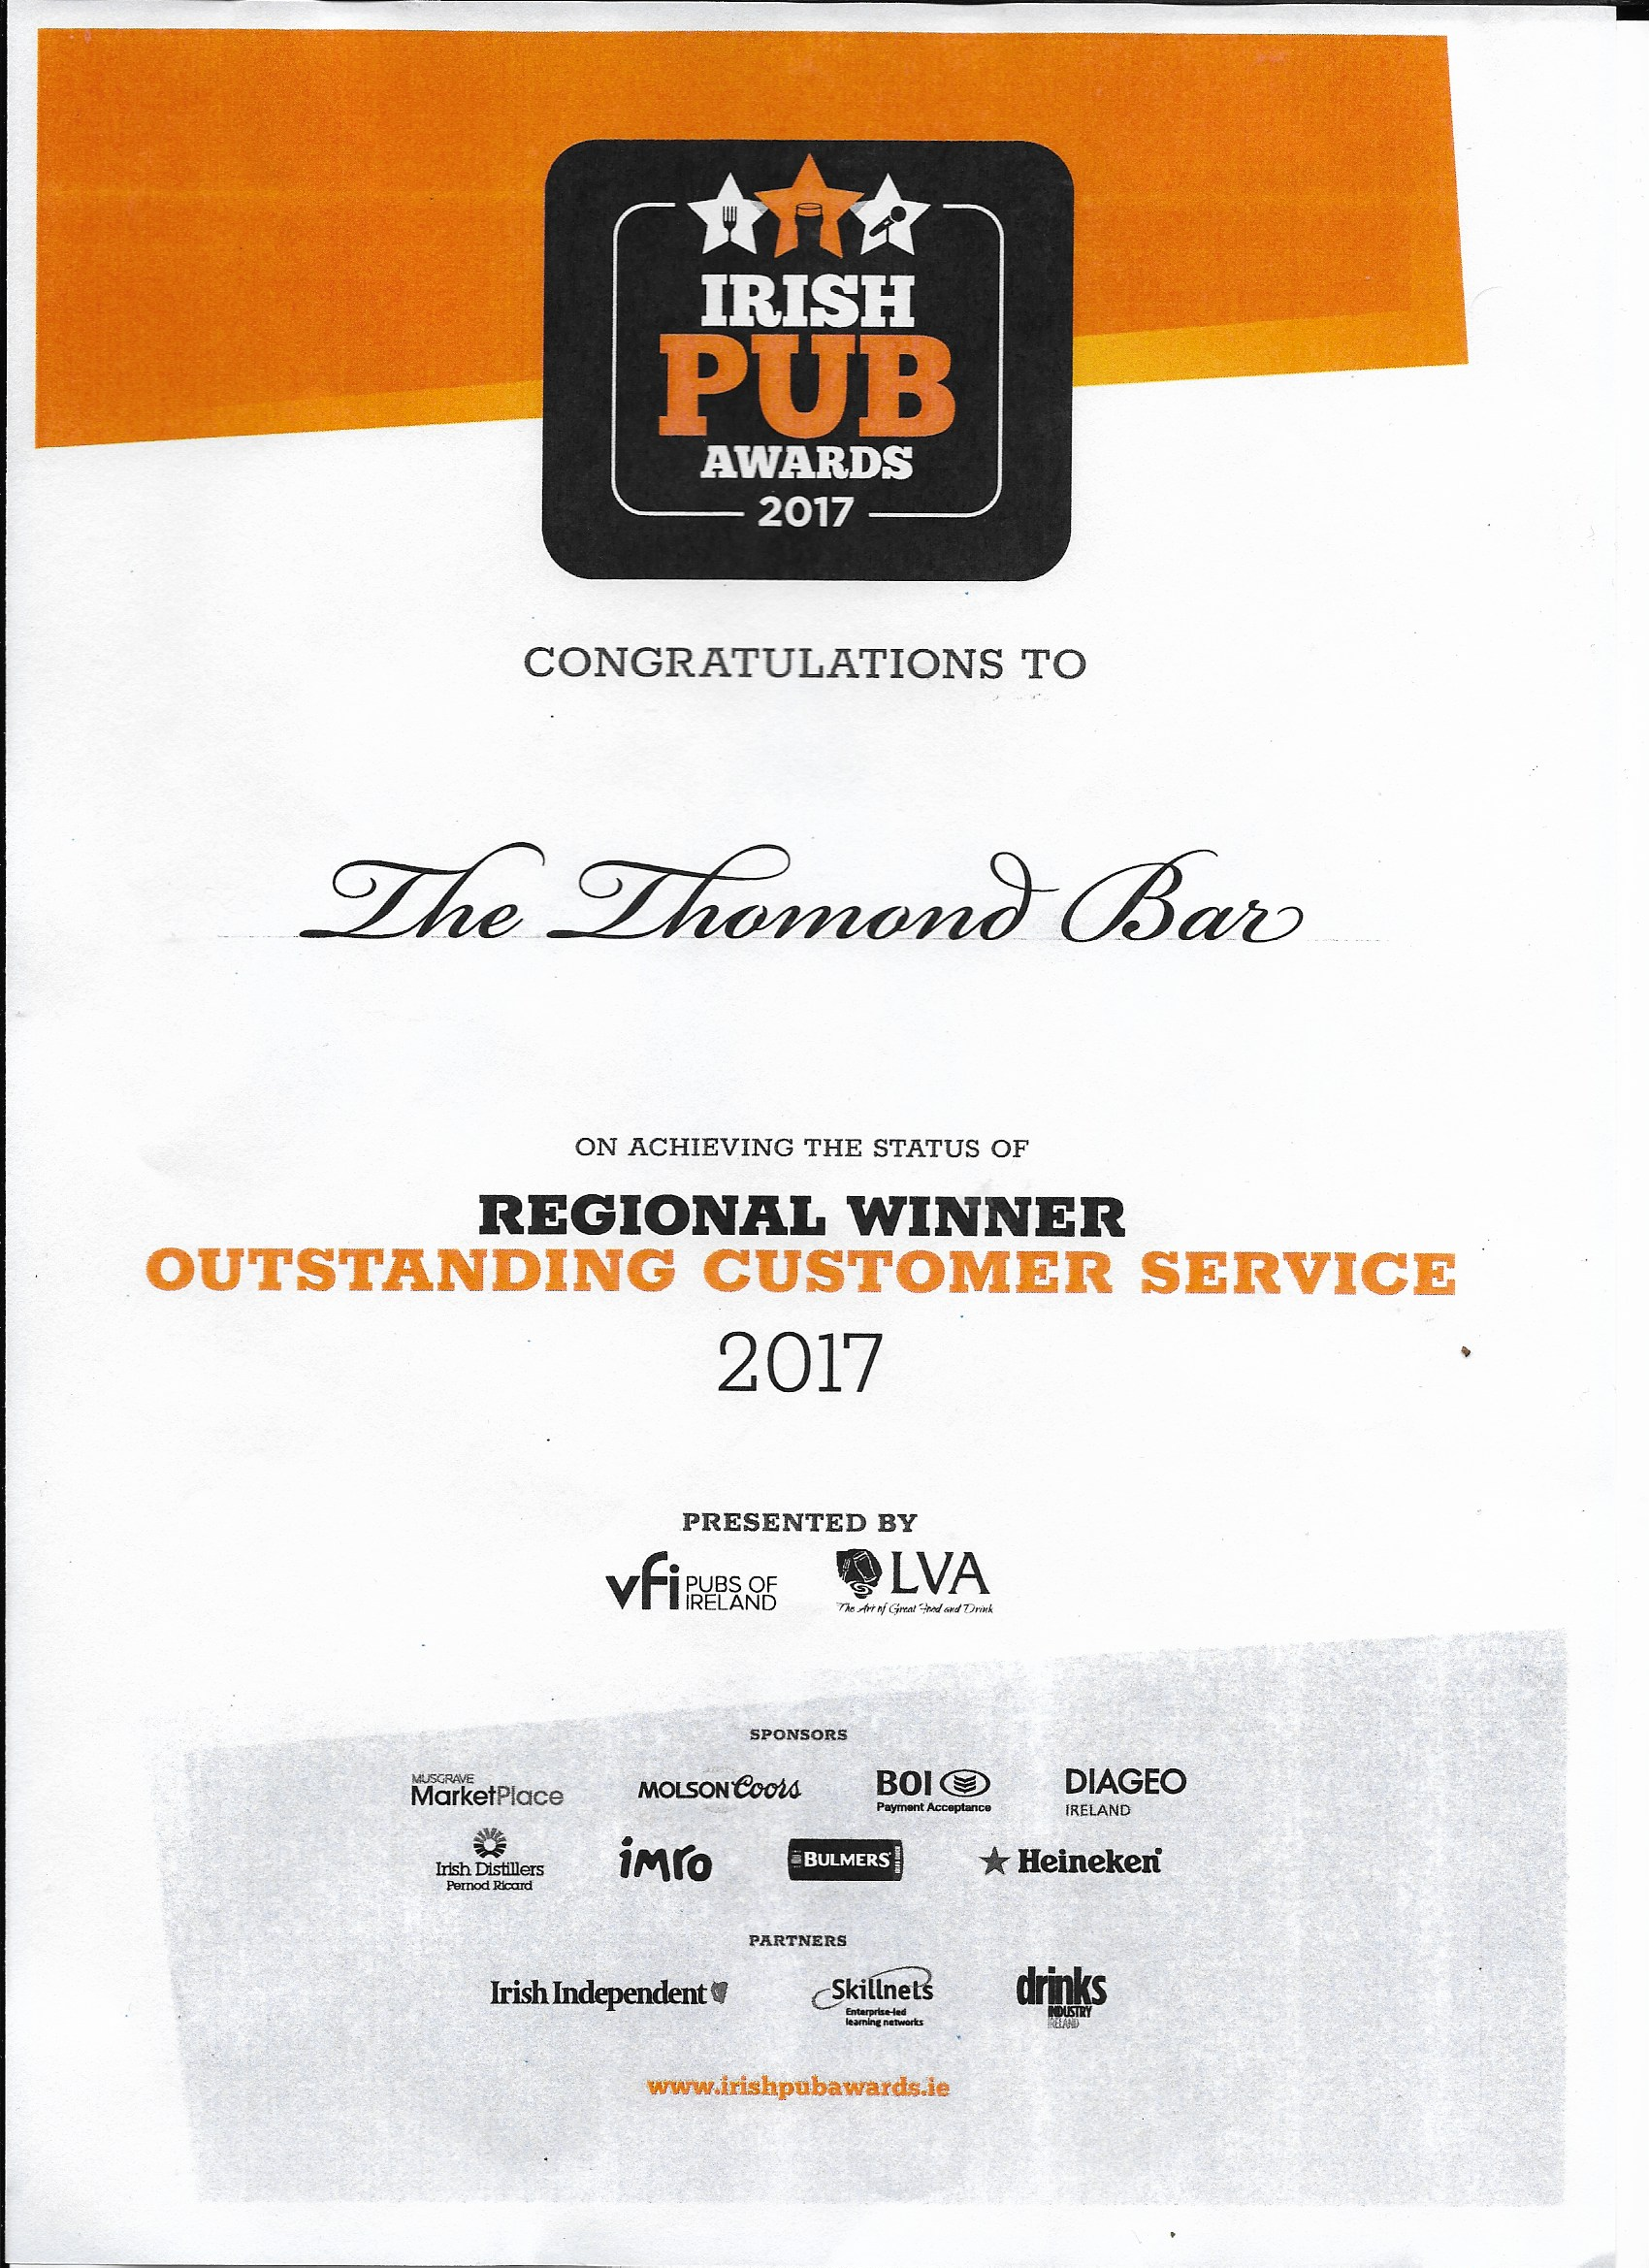 Irish Pub Awards 2017